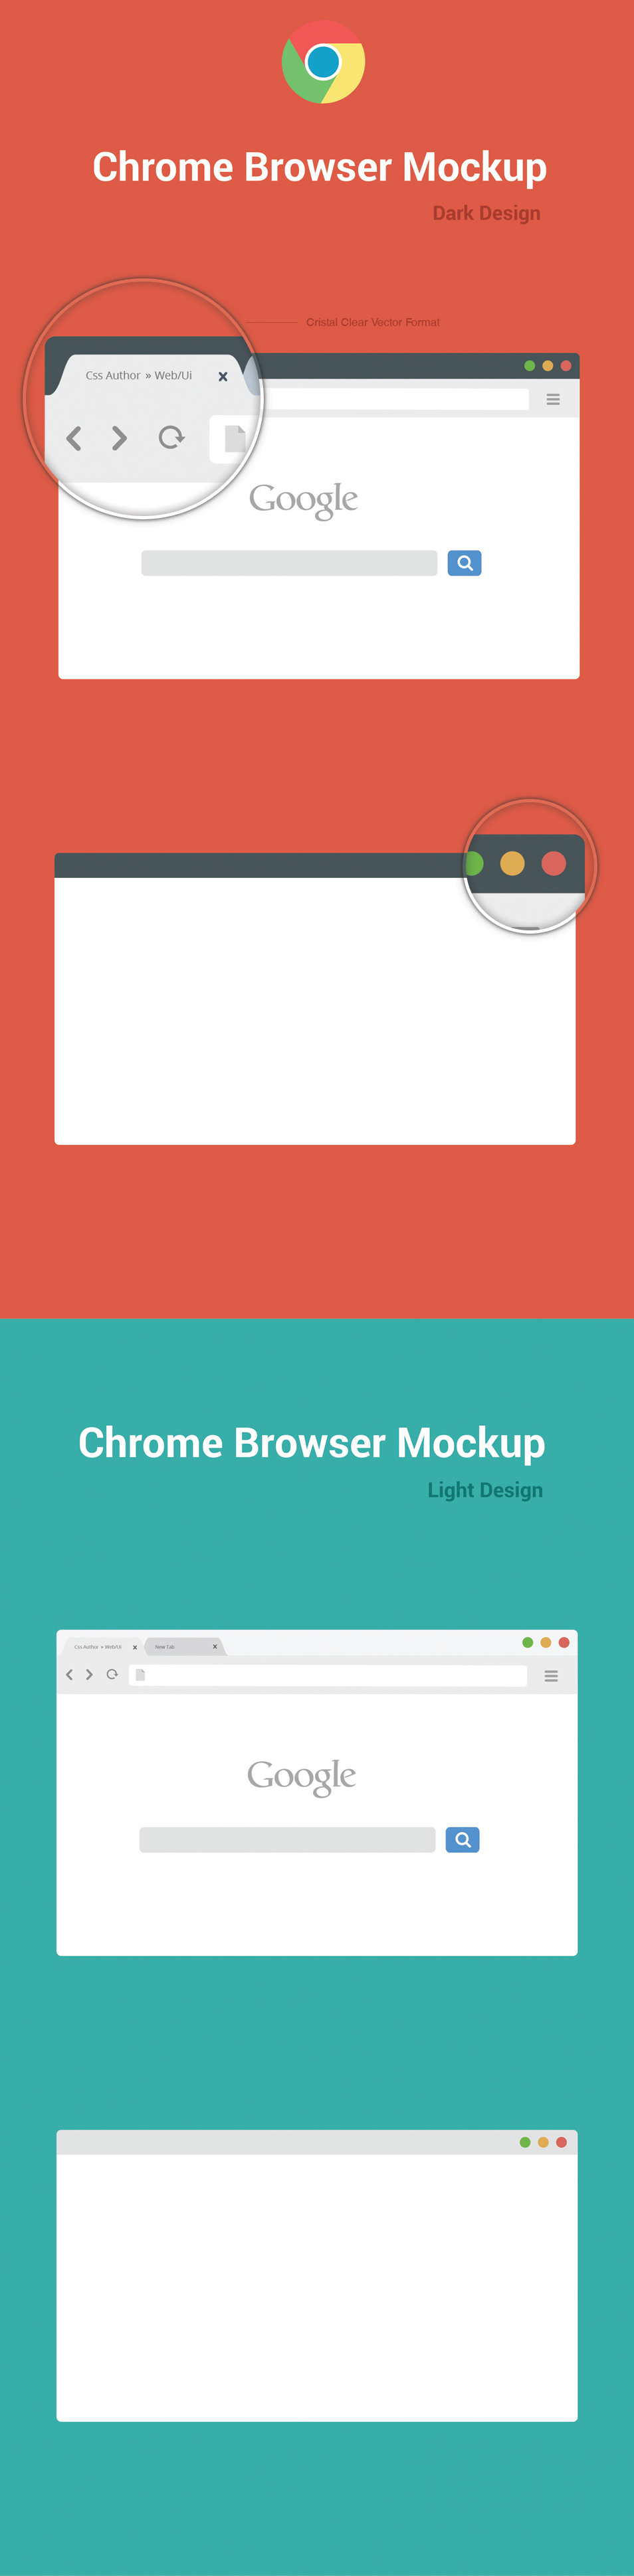 Chrome-Browser-Mockup-cssauthor